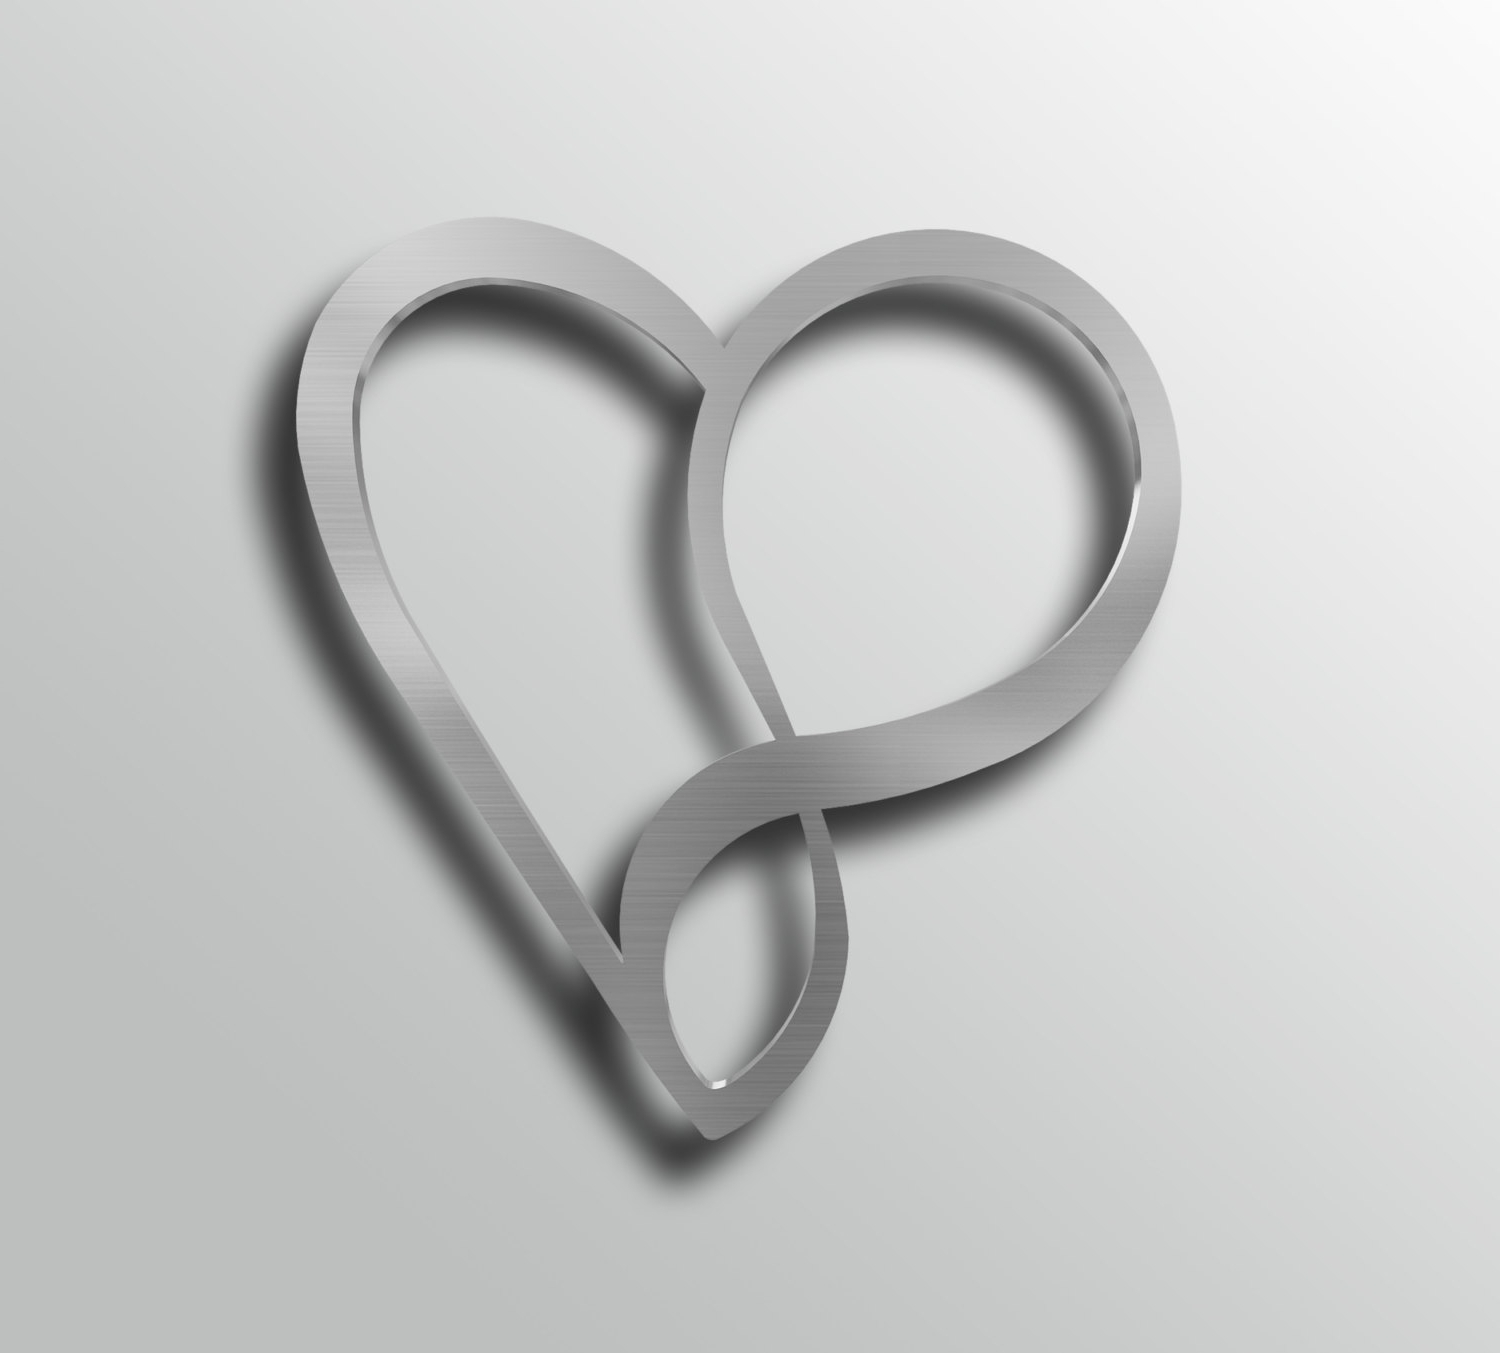 Preferred Heart Shaped Metal Wall Art Intended For Infinity Heart Metal Wall Art, Heart Wall Decor, Modern (View 2 of 15)